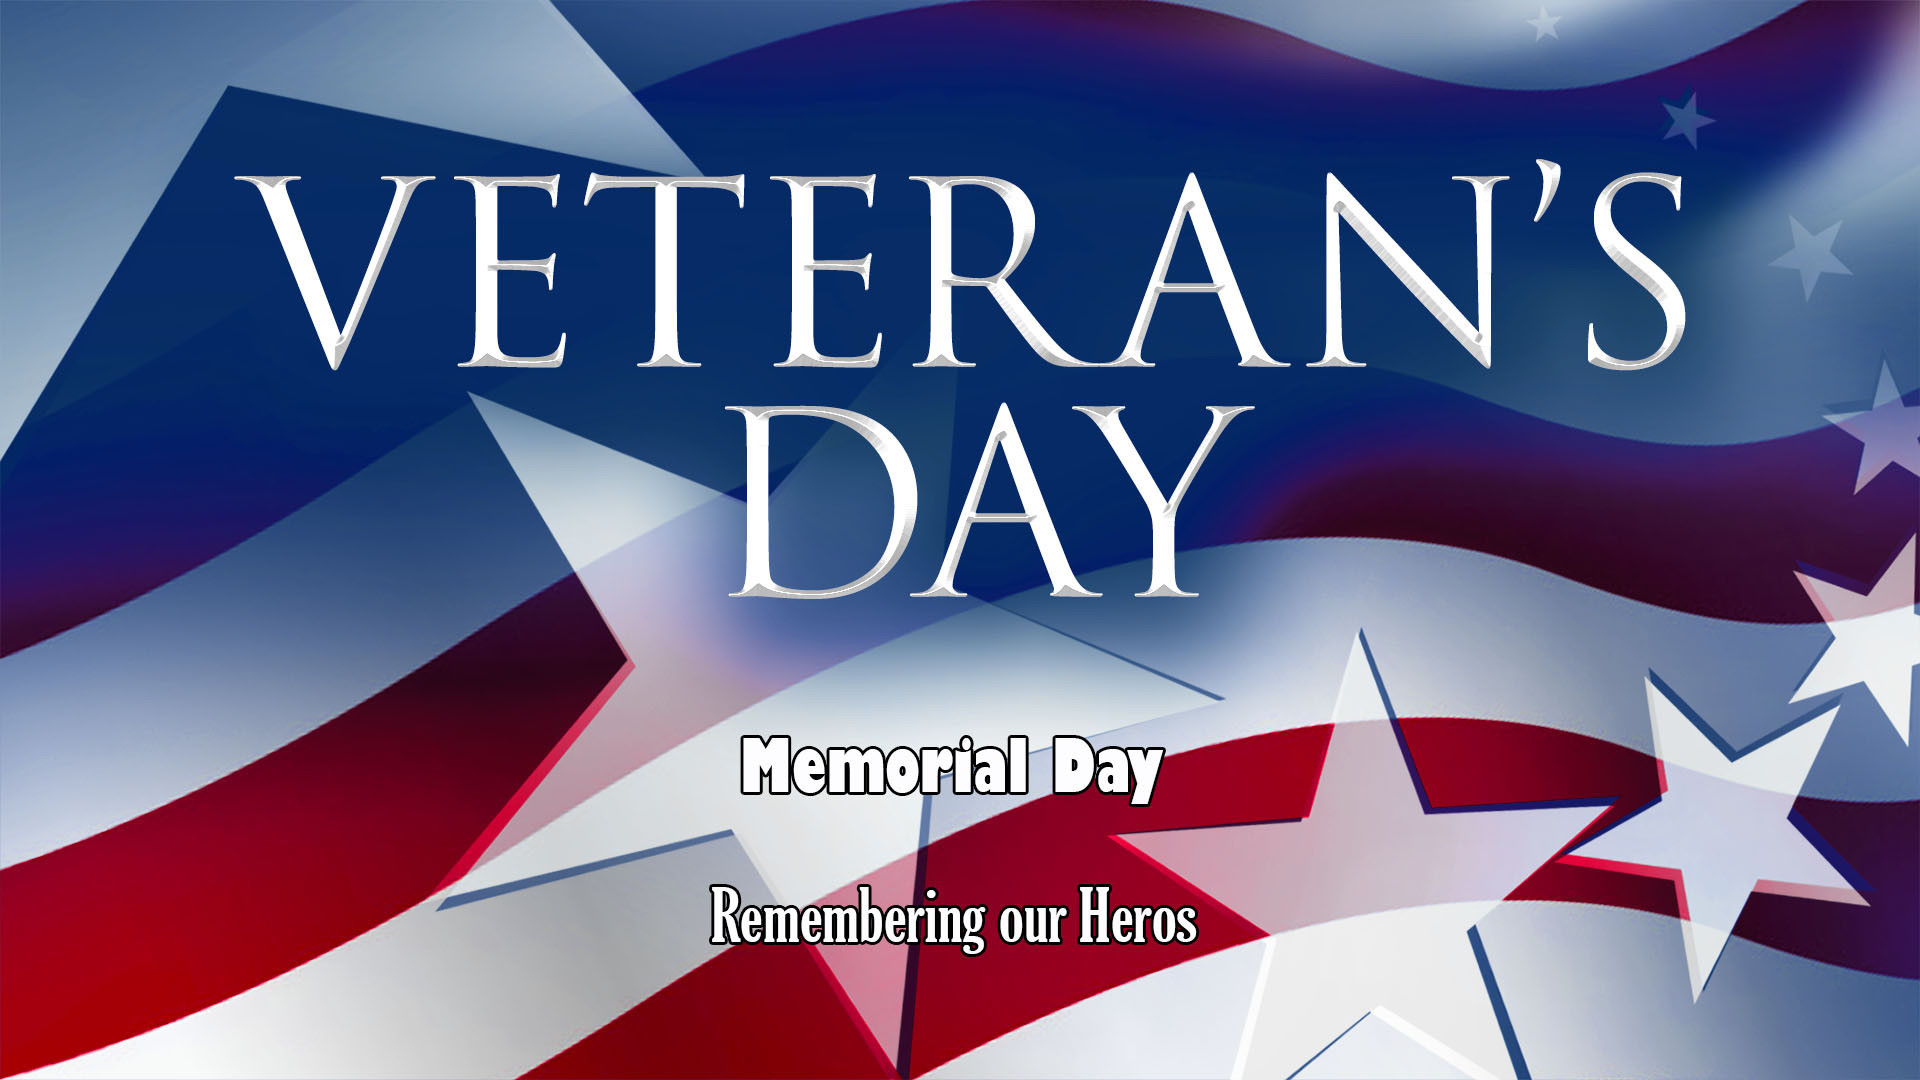 1920x1080 Veterans Day 2017 Wallpaper Awesome Happy Veterans Day 2017 Hd Wallpapers  Cards &